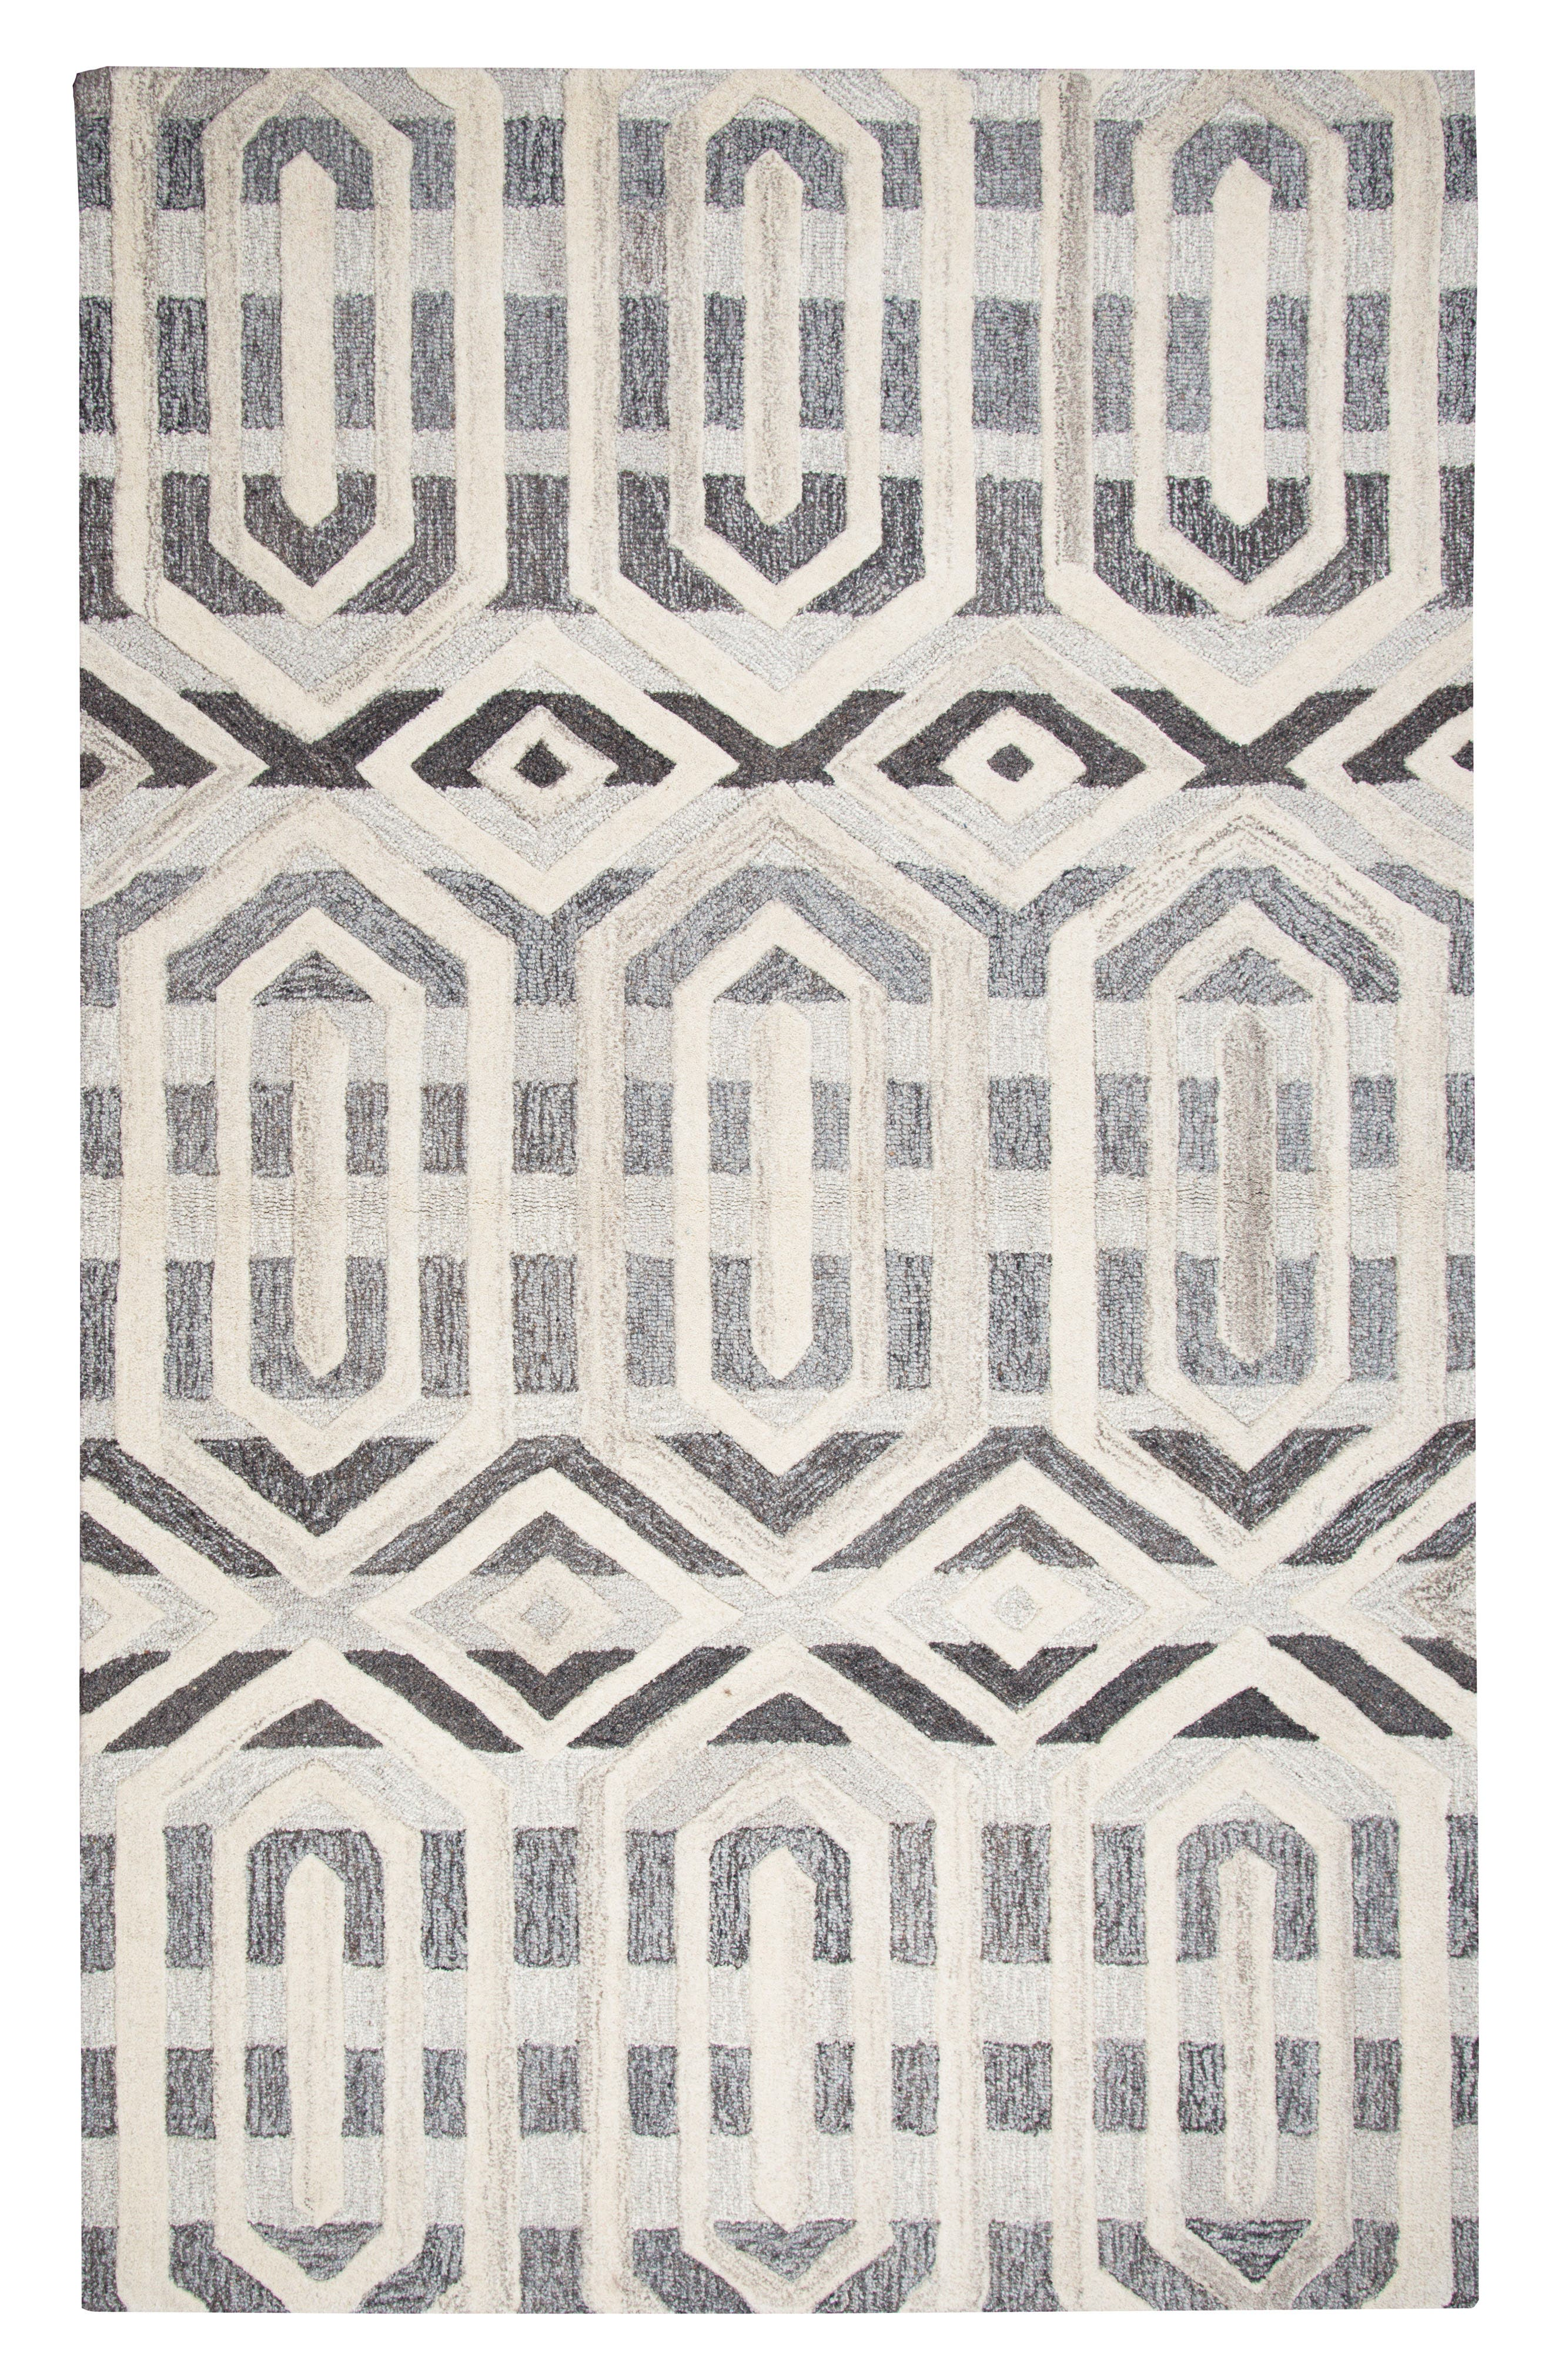 Urban Octagon Hand Tufted Wool Area Rug,                         Main,                         color, Grey